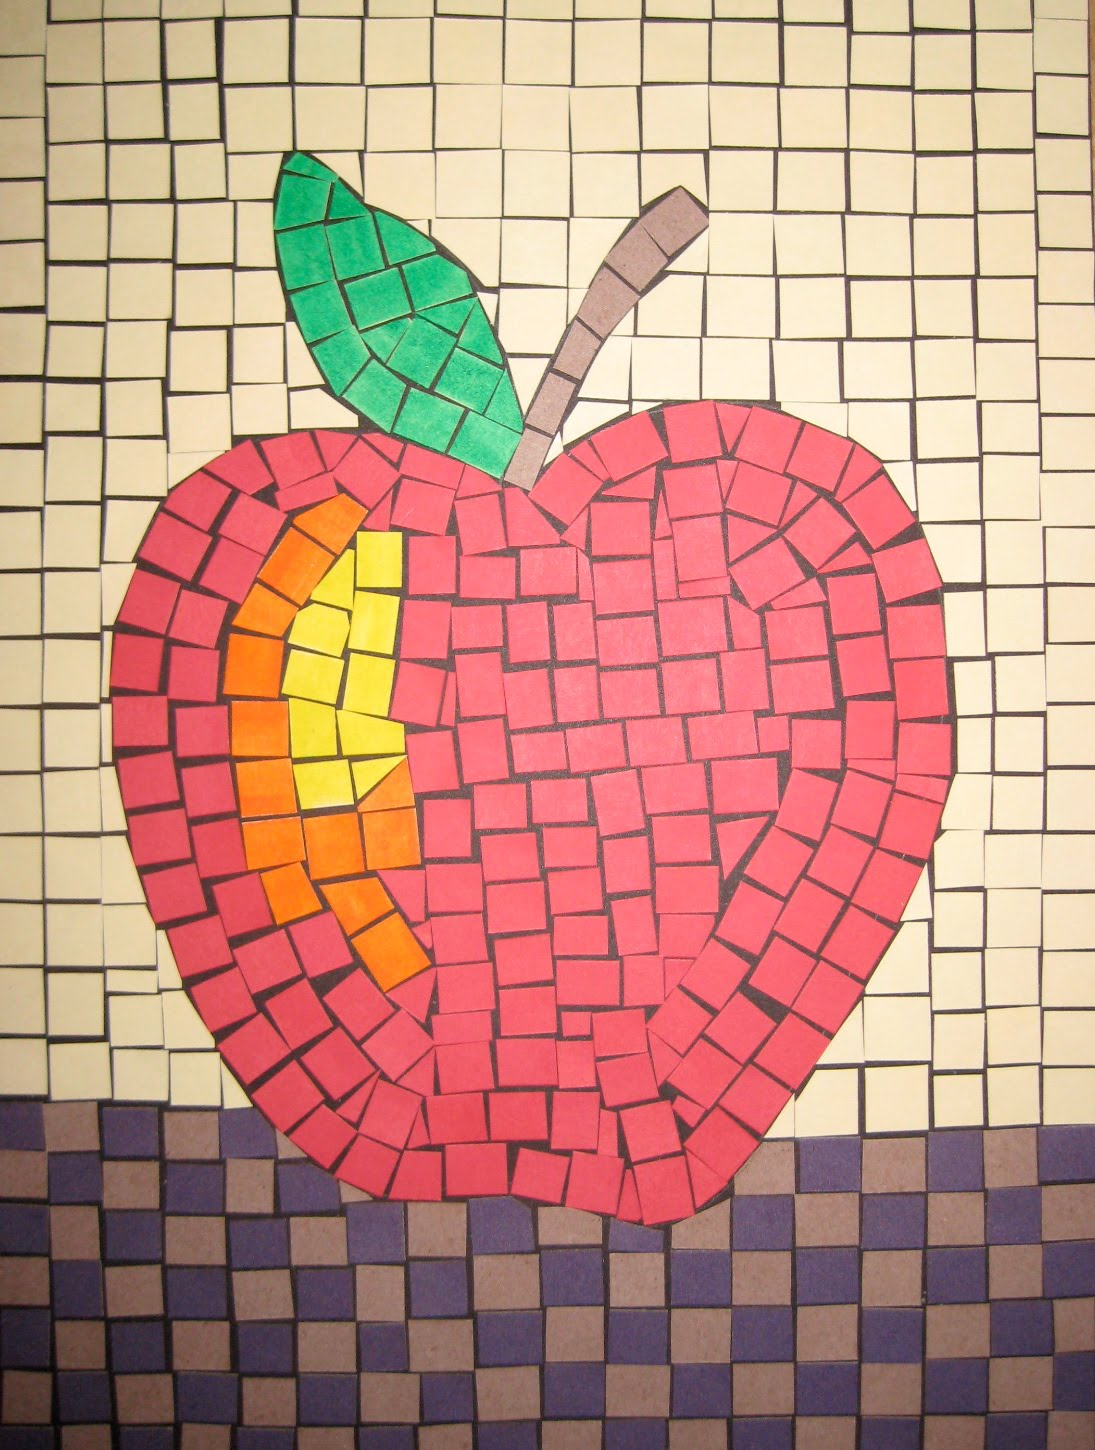 roman mosaic templates for kids - mosaics teachkidsart